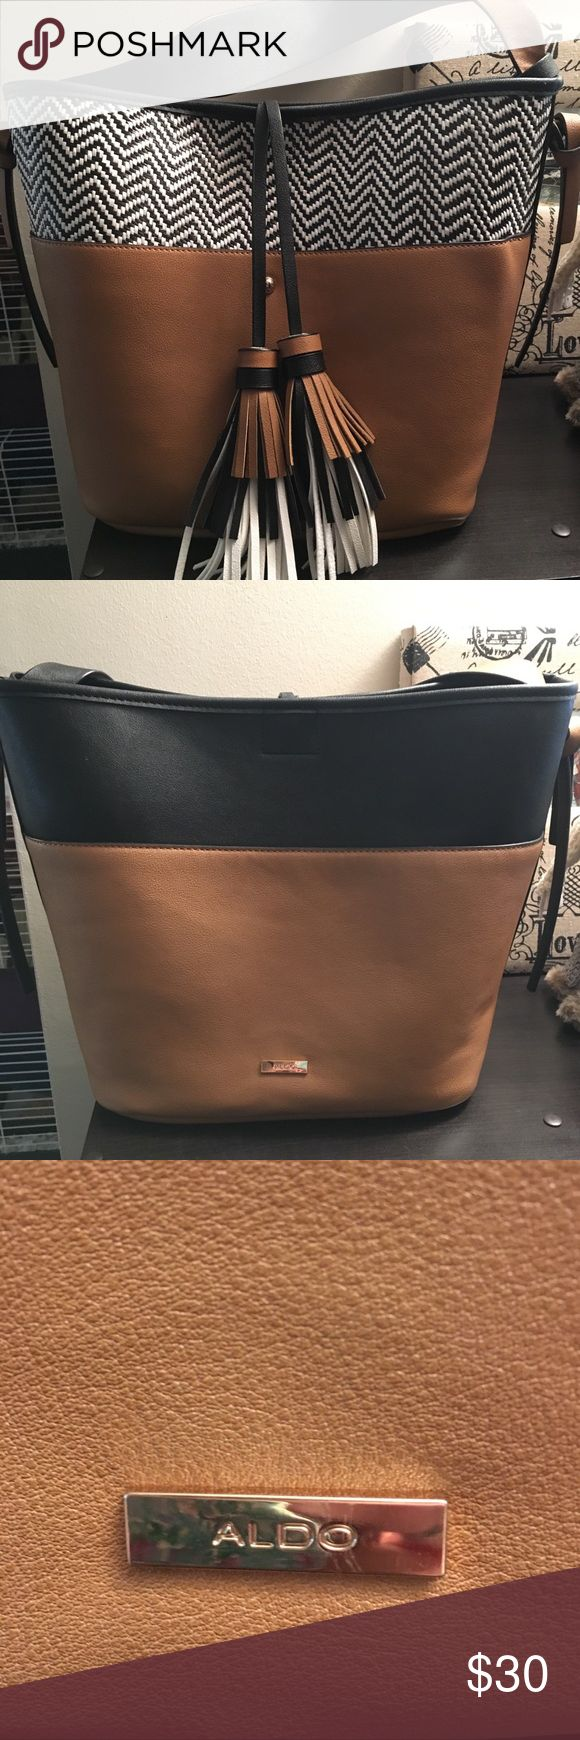 Large Aldo handbag Large Aldo handbag. Brown white and black so it goes with everything. Front pocket and removable inside pocket. It's the perfect size for an everyday bag! Aldo Bags Shoulder Bags